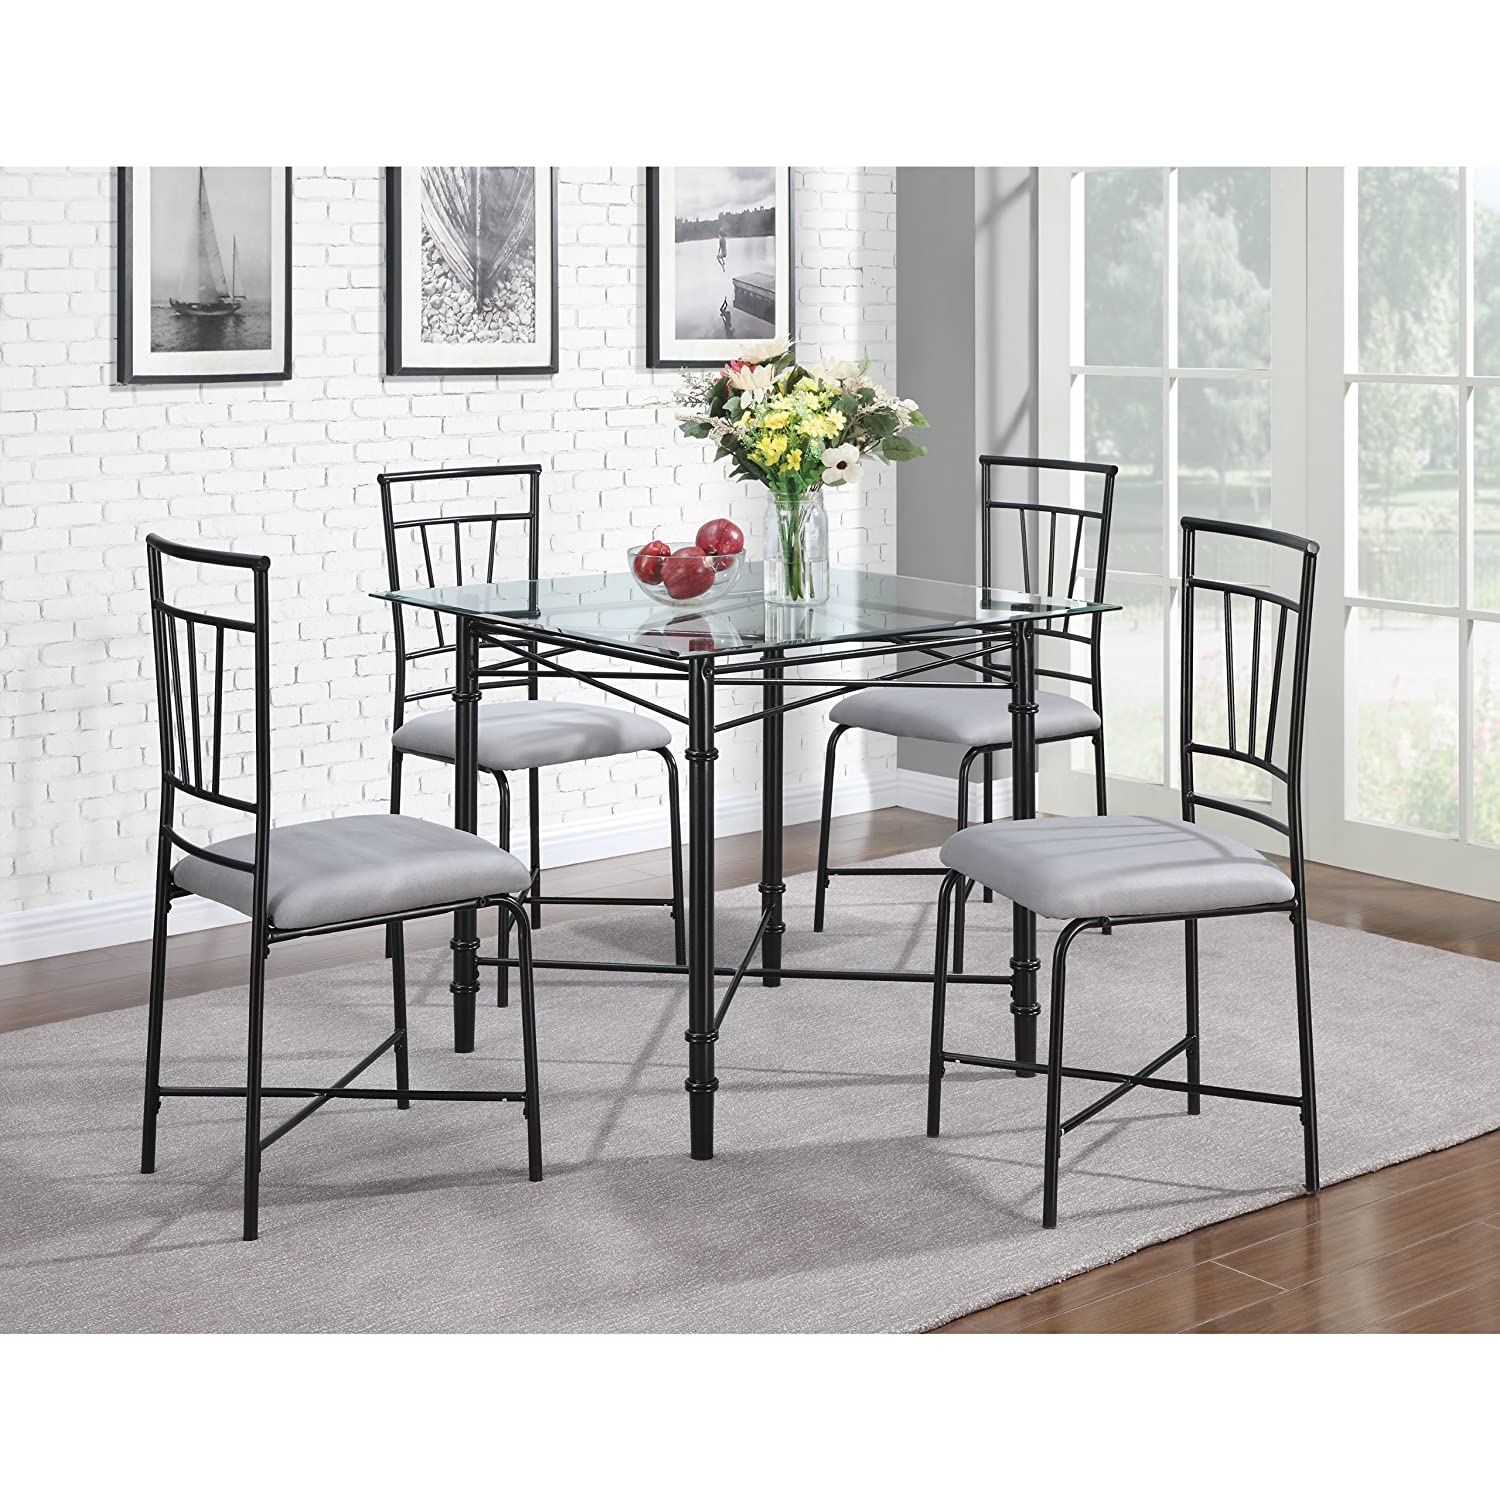 Amazon.com - Dorel Living 5-Piece Glass Top Metal Dining Set - Table u0026 Chair Sets  sc 1 st  Amazon.com & Amazon.com - Dorel Living 5-Piece Glass Top Metal Dining Set - Table ...